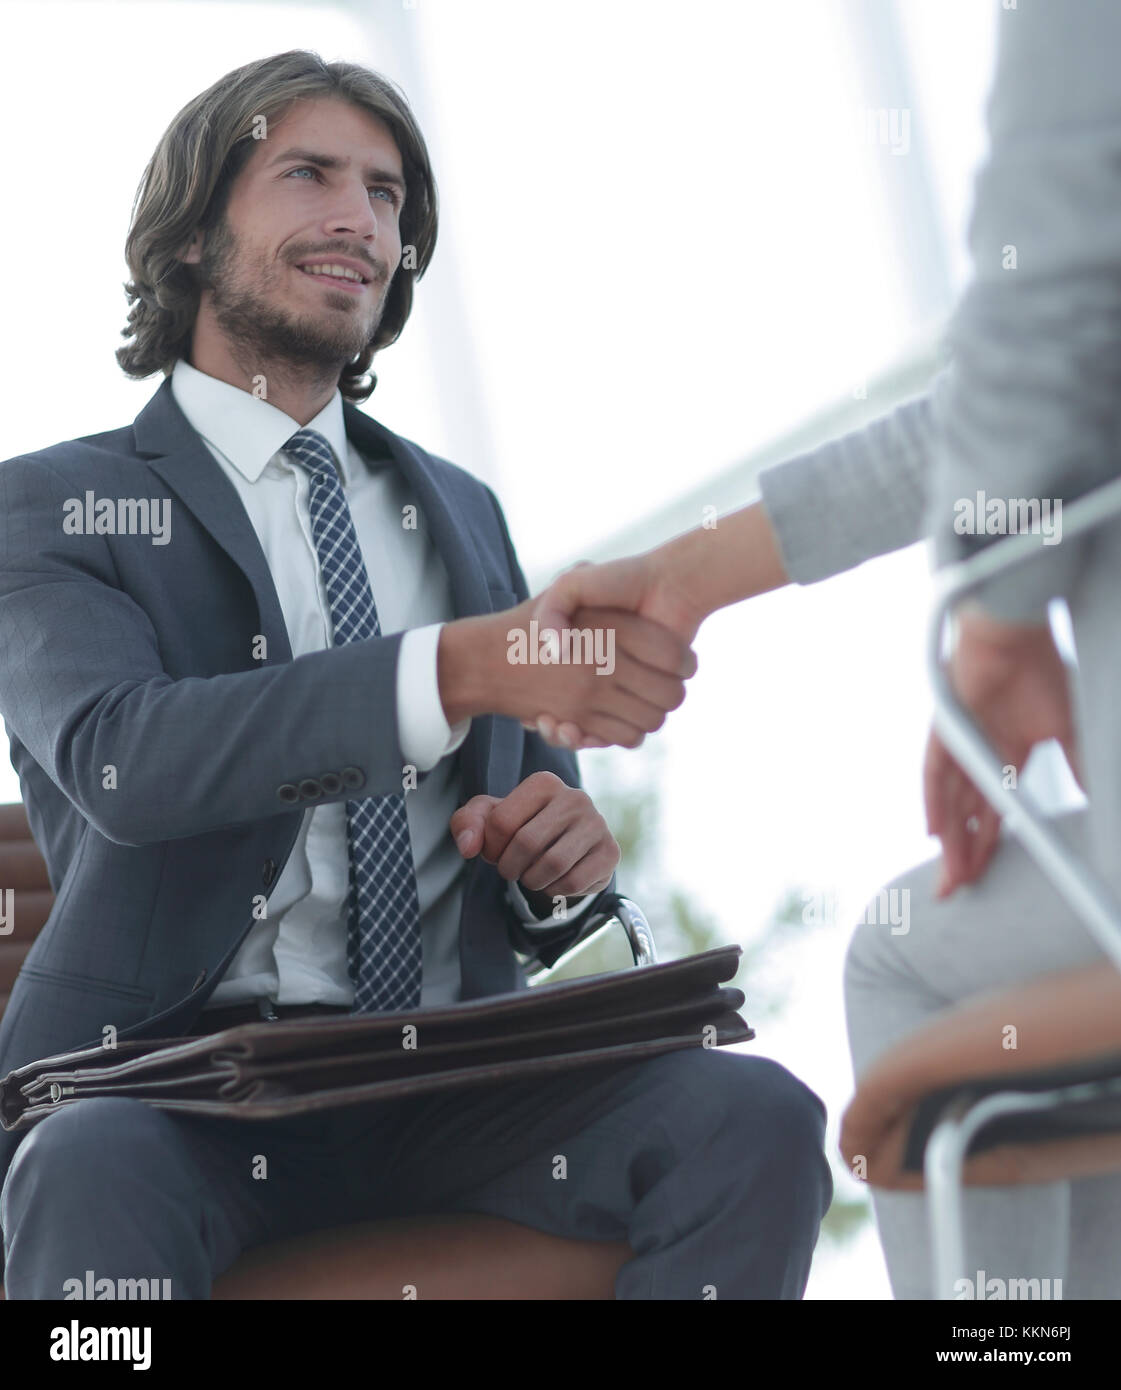 Successful job interview with boss and employee handshaking - Stock Image